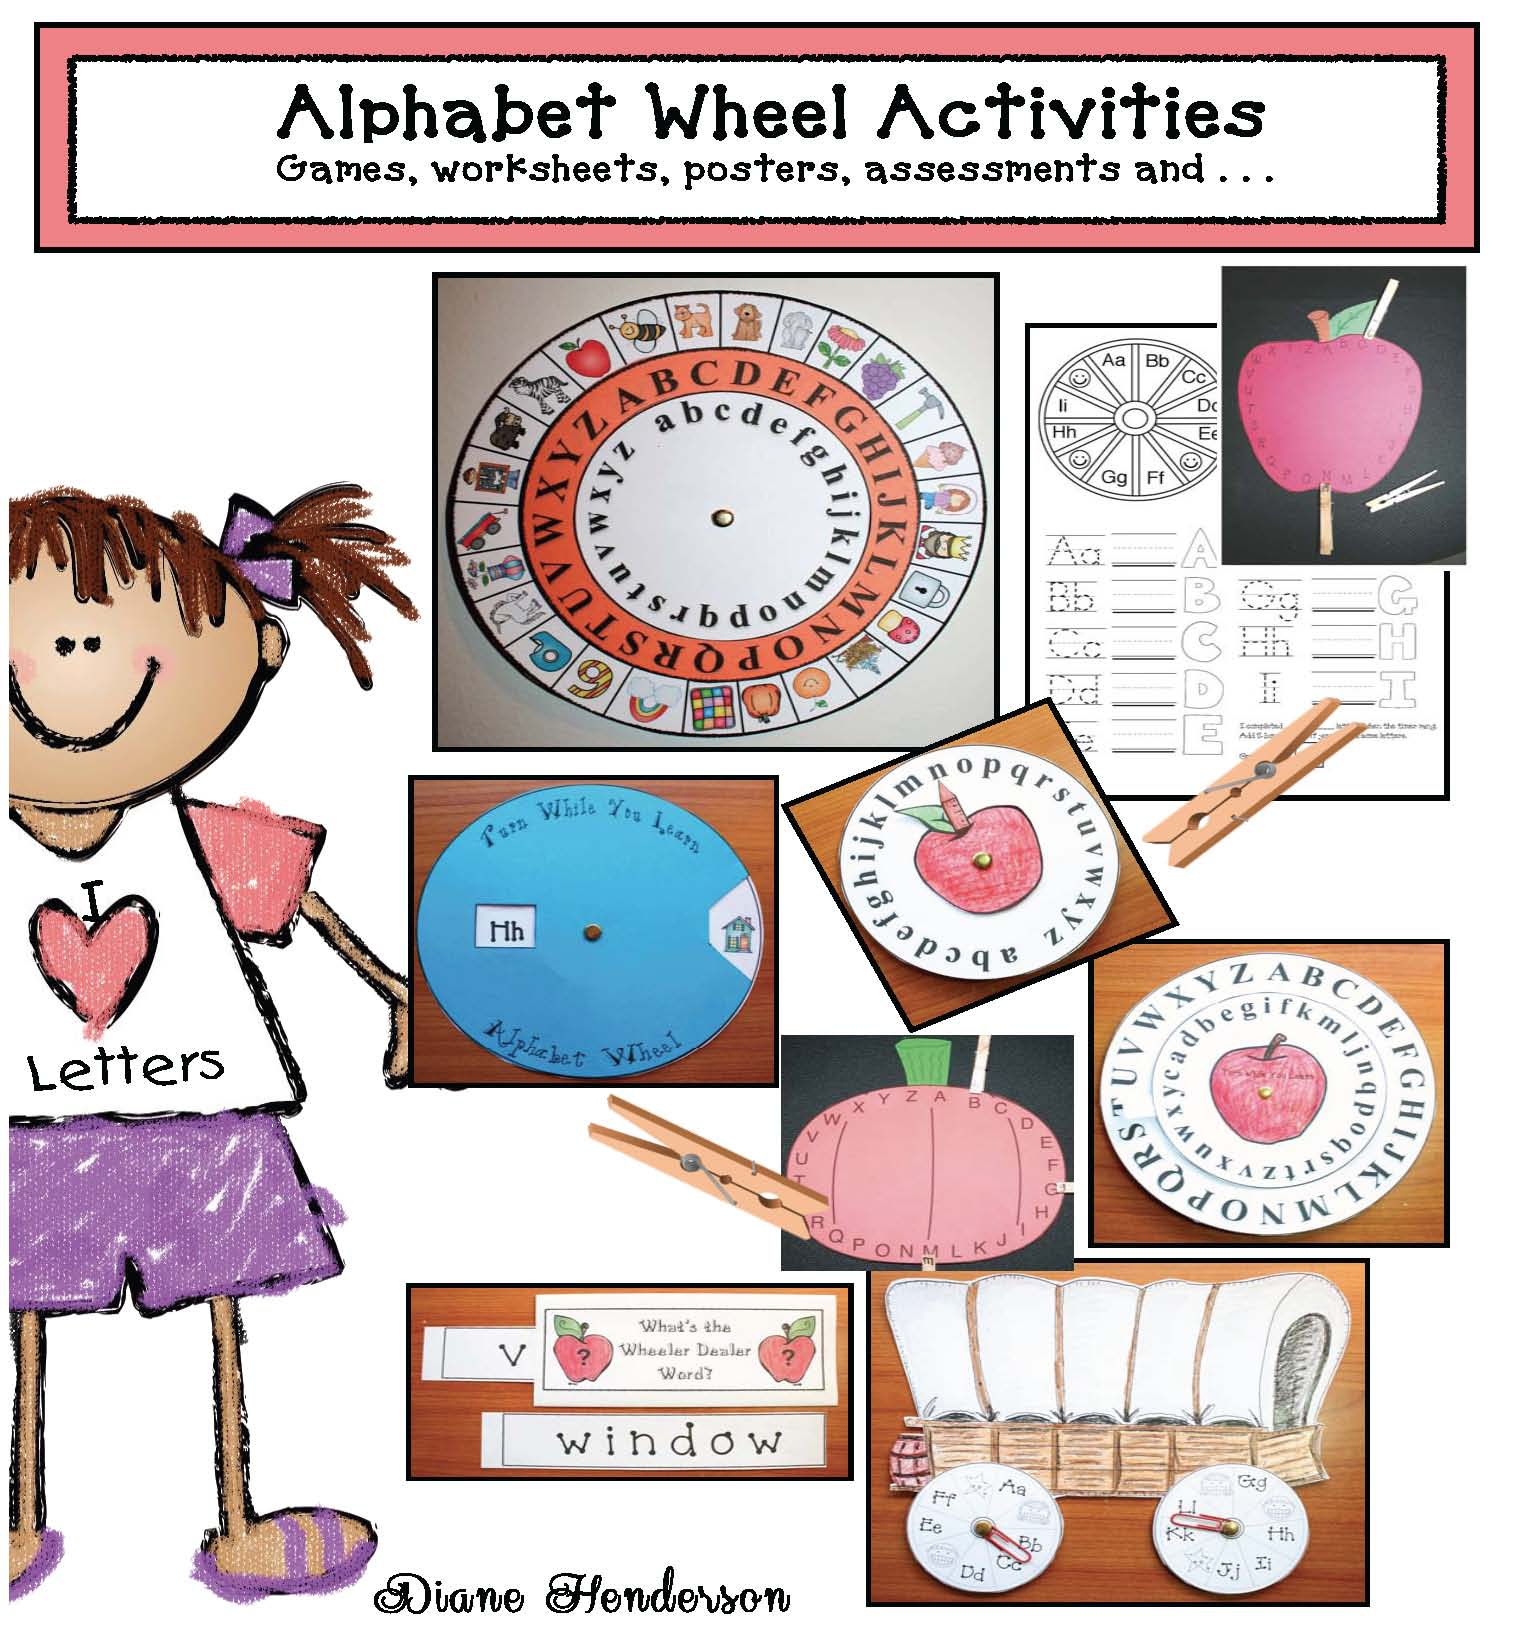 alphabet activities, alphabet worksheets, alphabet games, alphabet posters, alphabet assessments, alphabet cards, alphabet wheels, alphabet crafts,